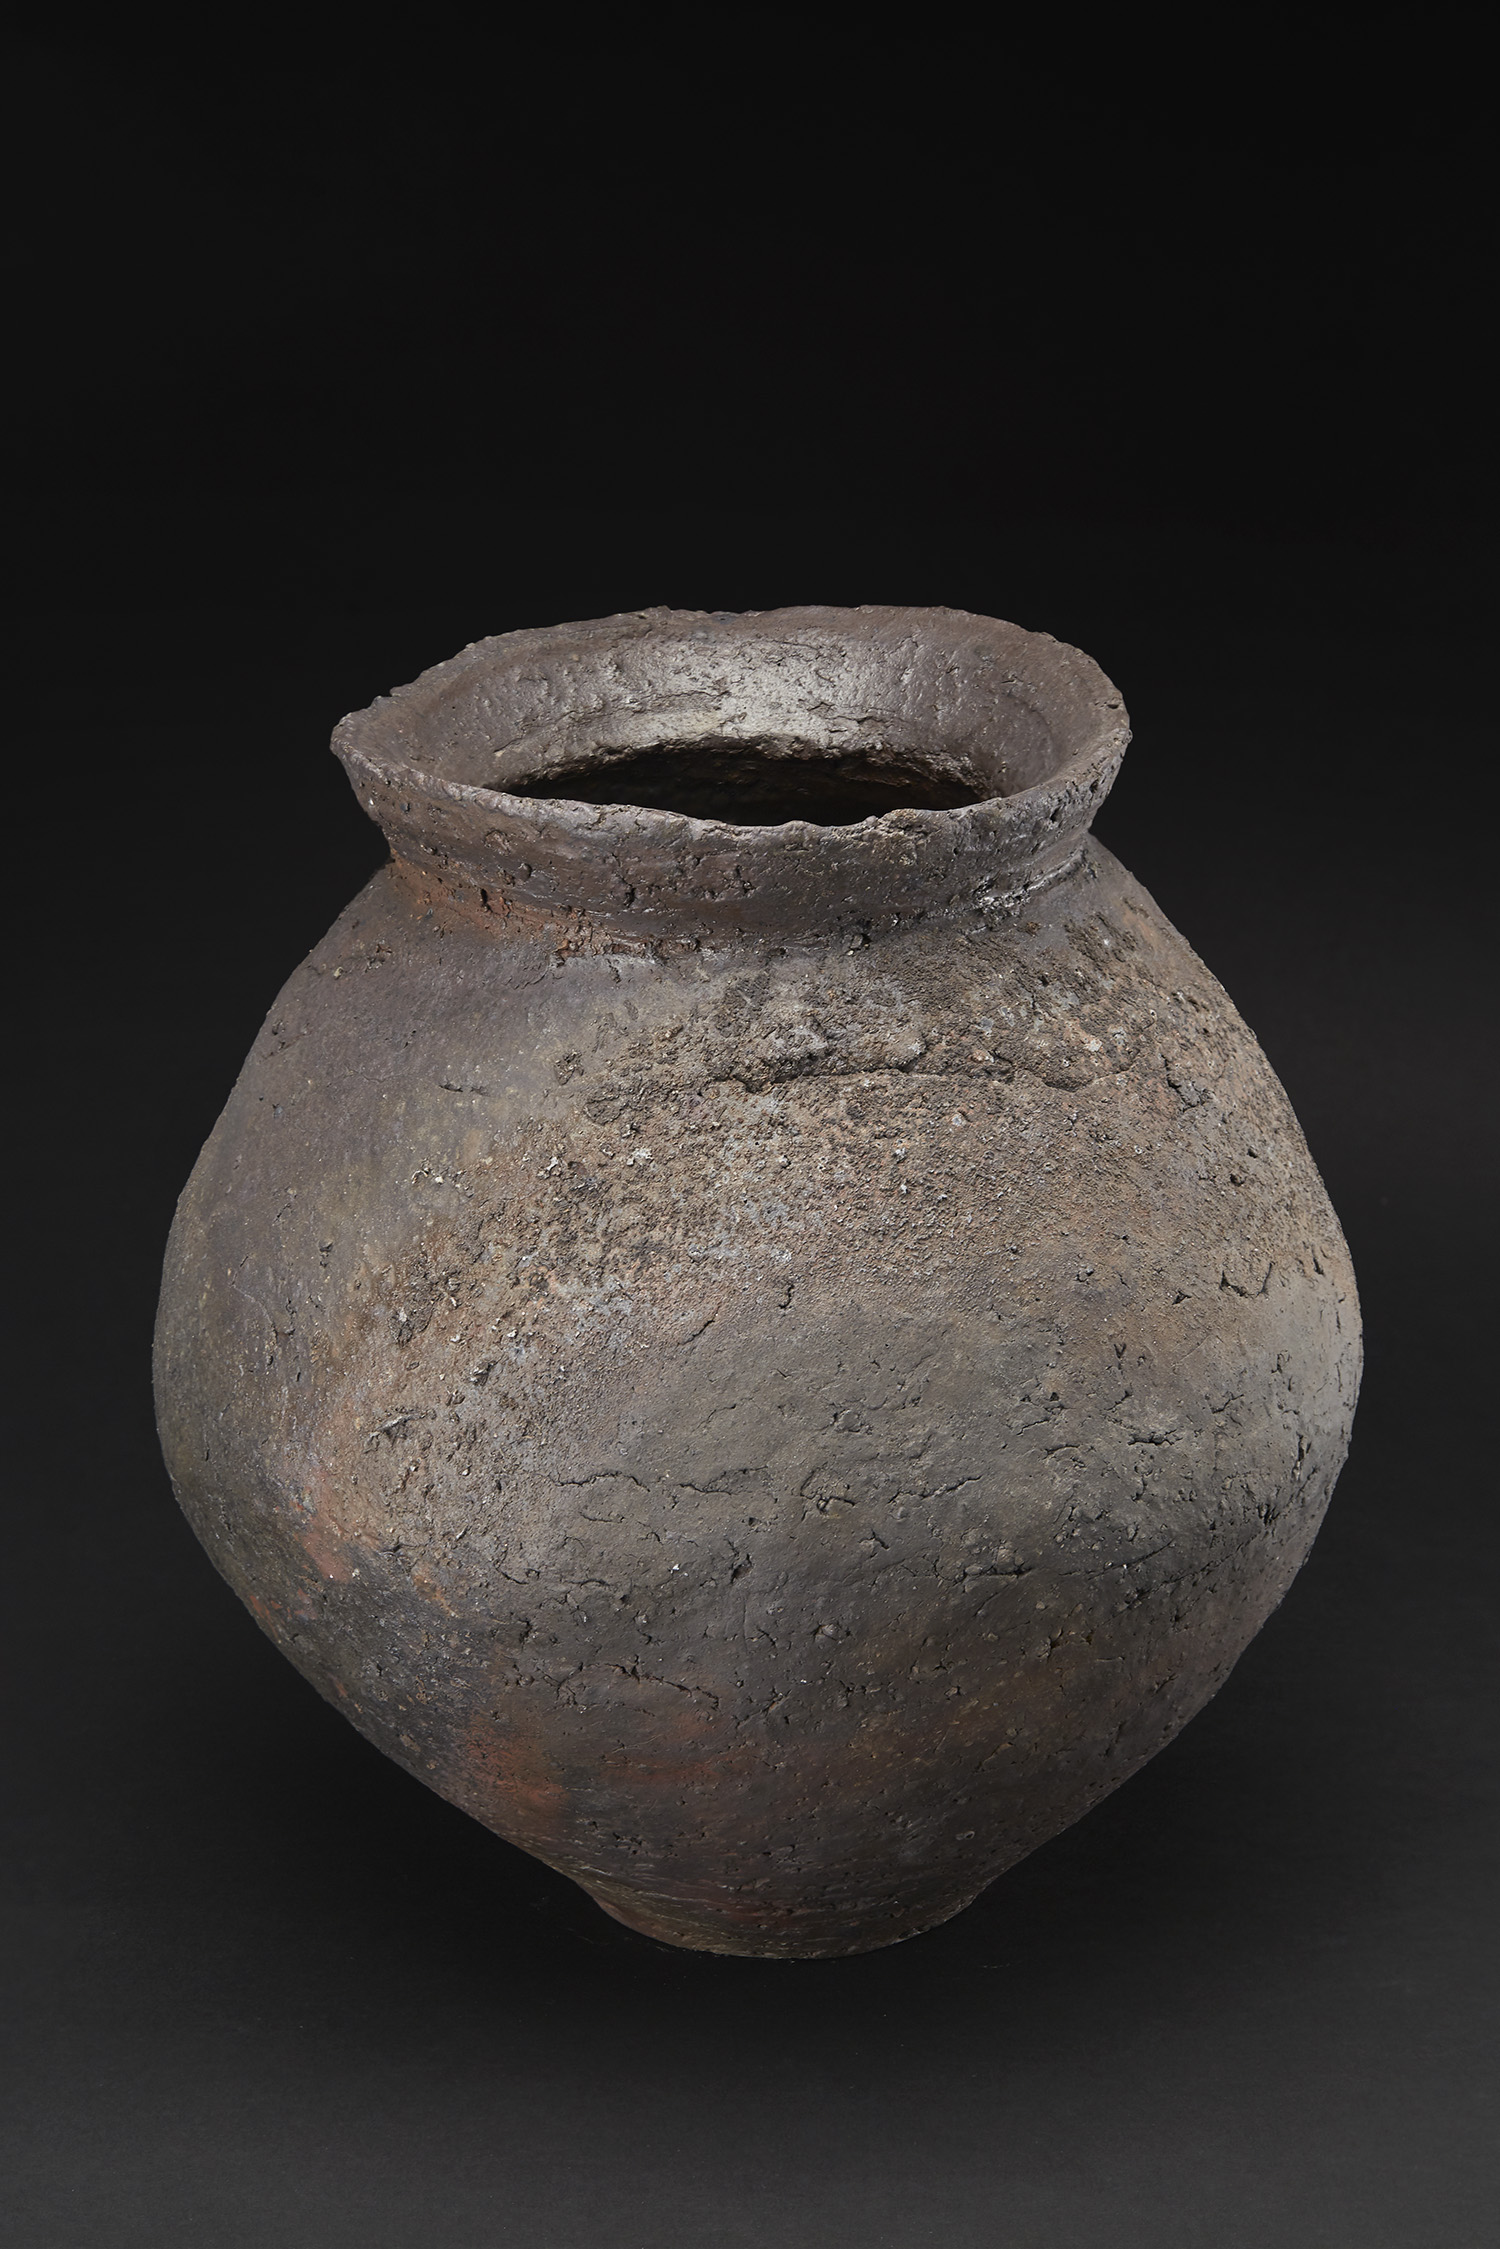 Mitch Iburg  Ember Buried Wide Mouthed Vessel  , 2018 Wild Minnesota kaolinitic clays with crushed stone aggregate 11 x 11 x 11 inches 27.9 x 27.9 x 27.9 cm Mib 29